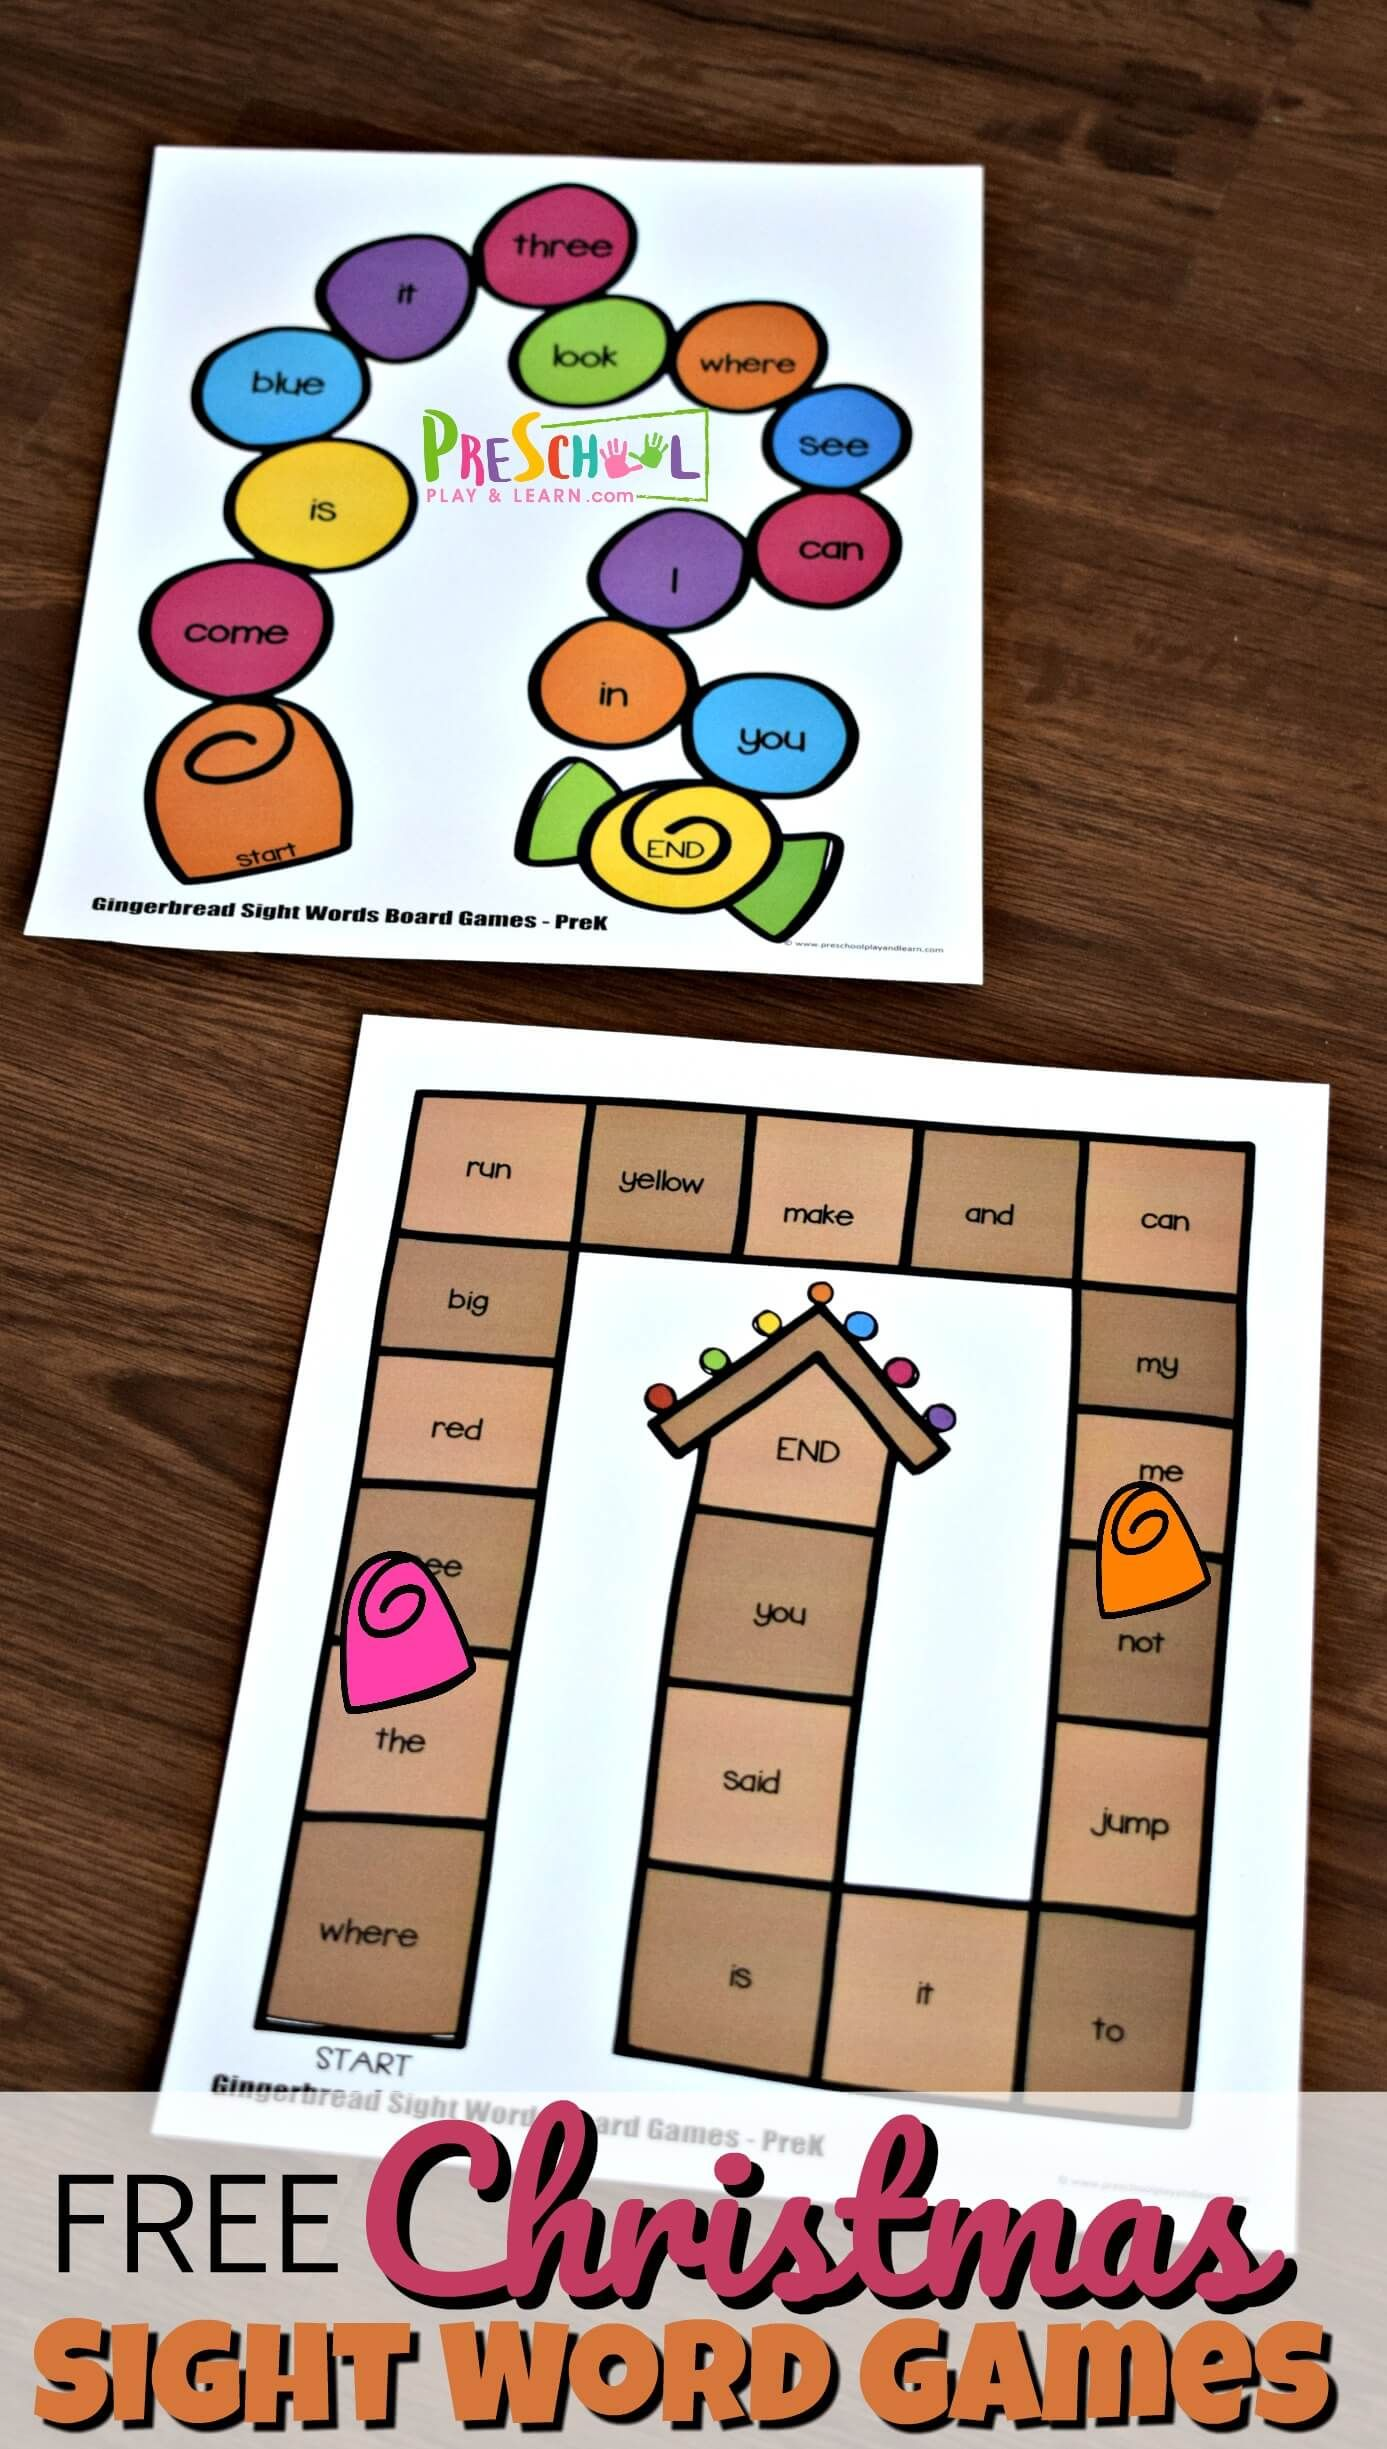 Free Christmas Sight Word Games